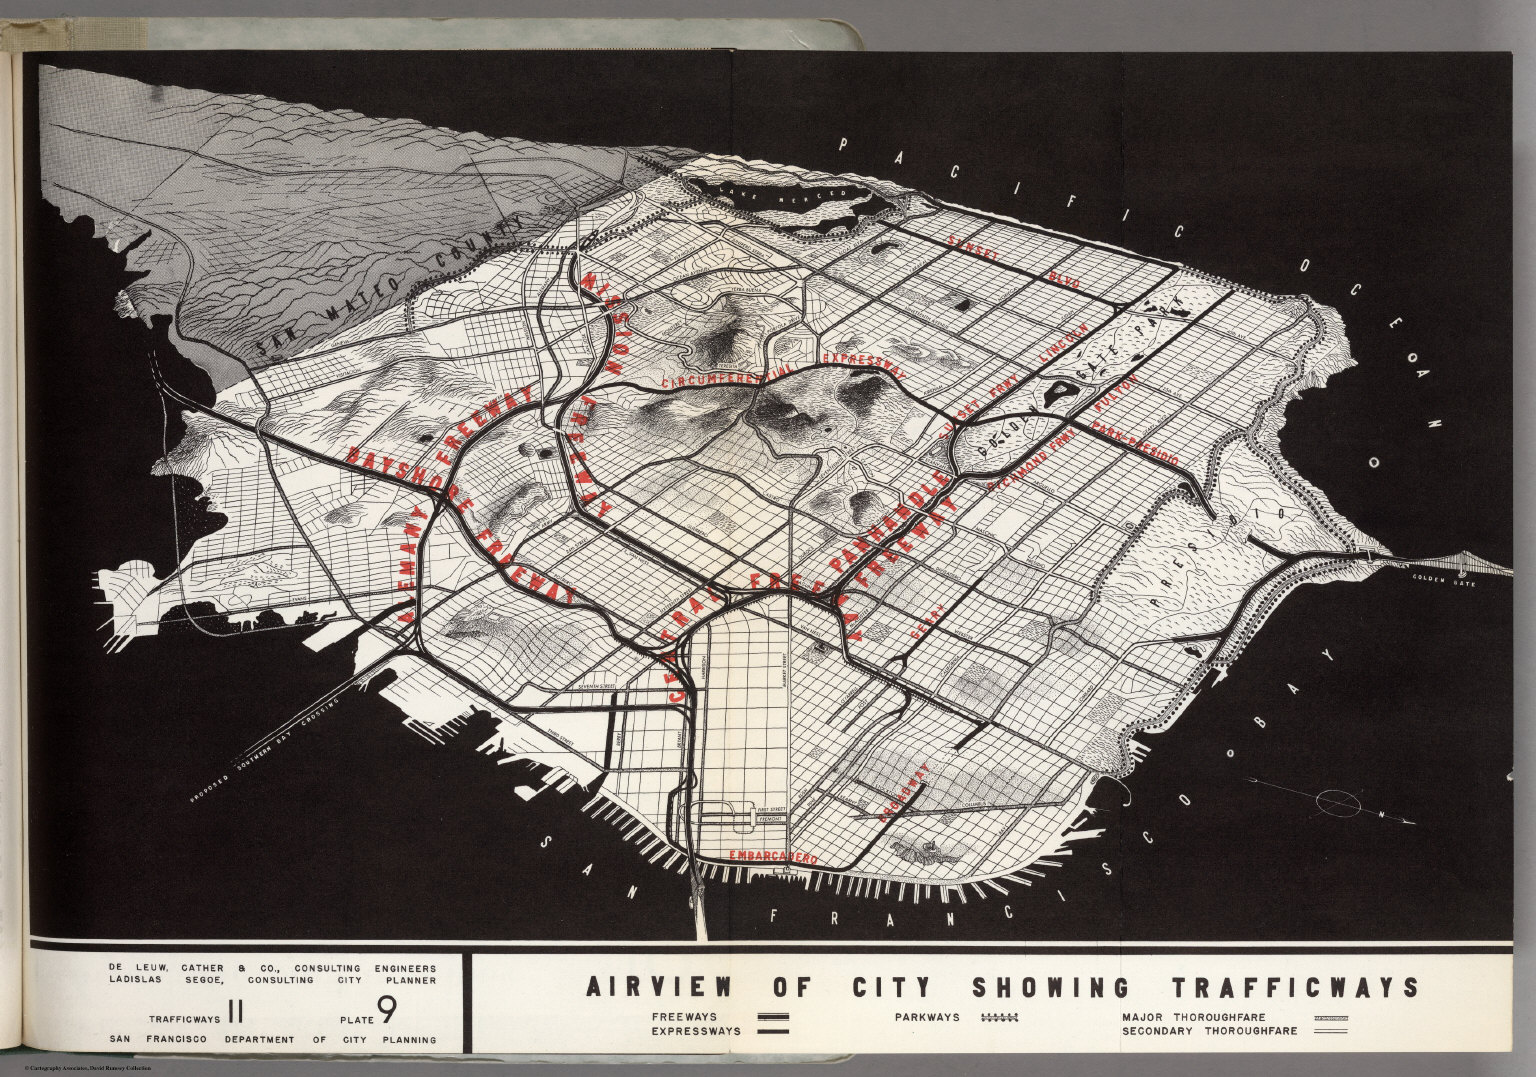 (San Francisco) Airview of city showing trafficways. Trafficways 11 Plate 9